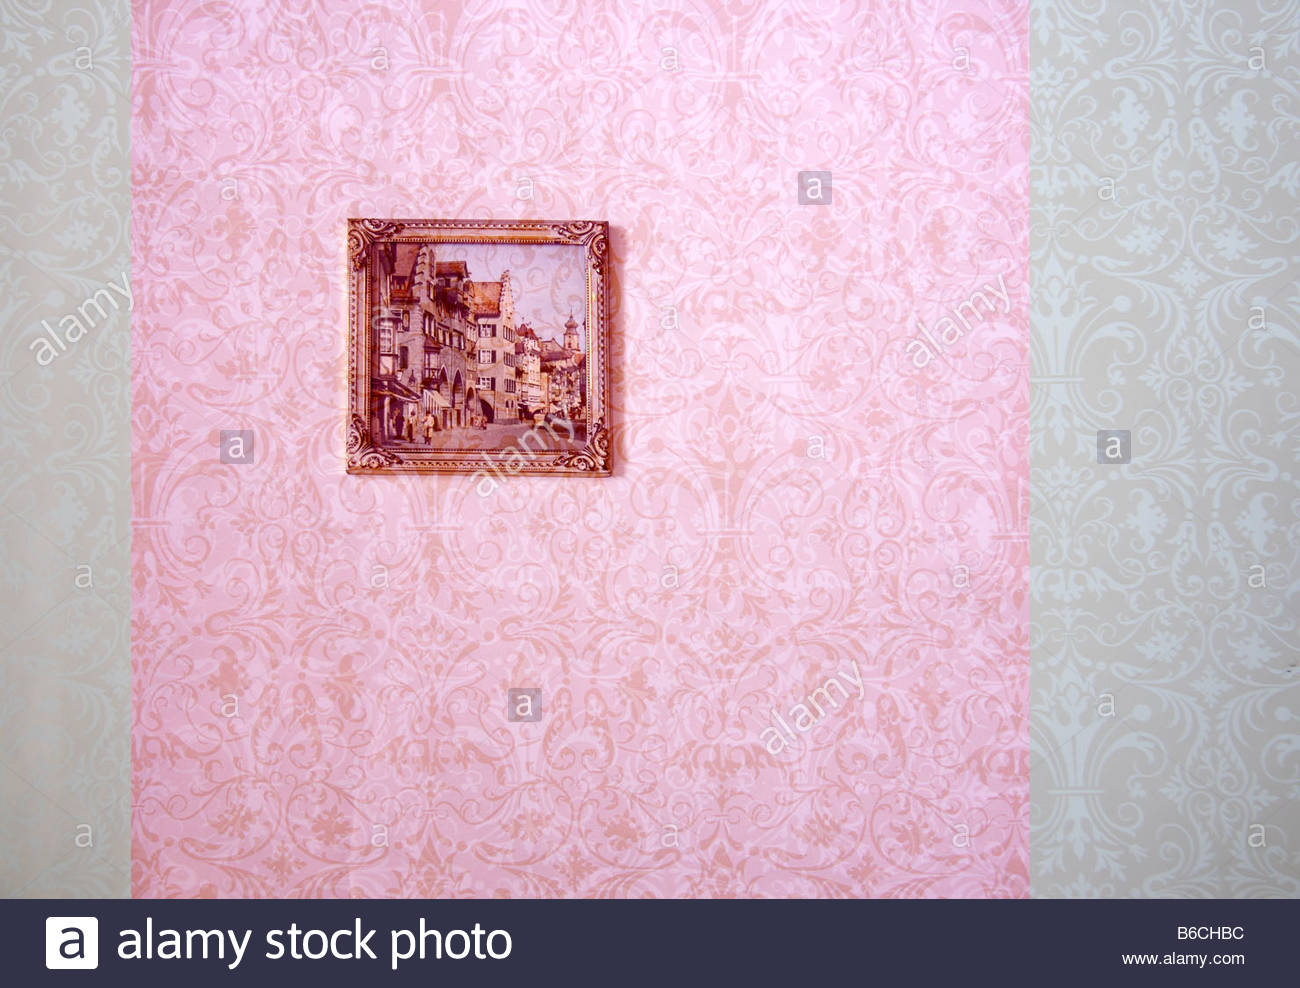 wallpaper hanging horizontal stockfotos wallpaper hanging horizontal bilder alamy. Black Bedroom Furniture Sets. Home Design Ideas